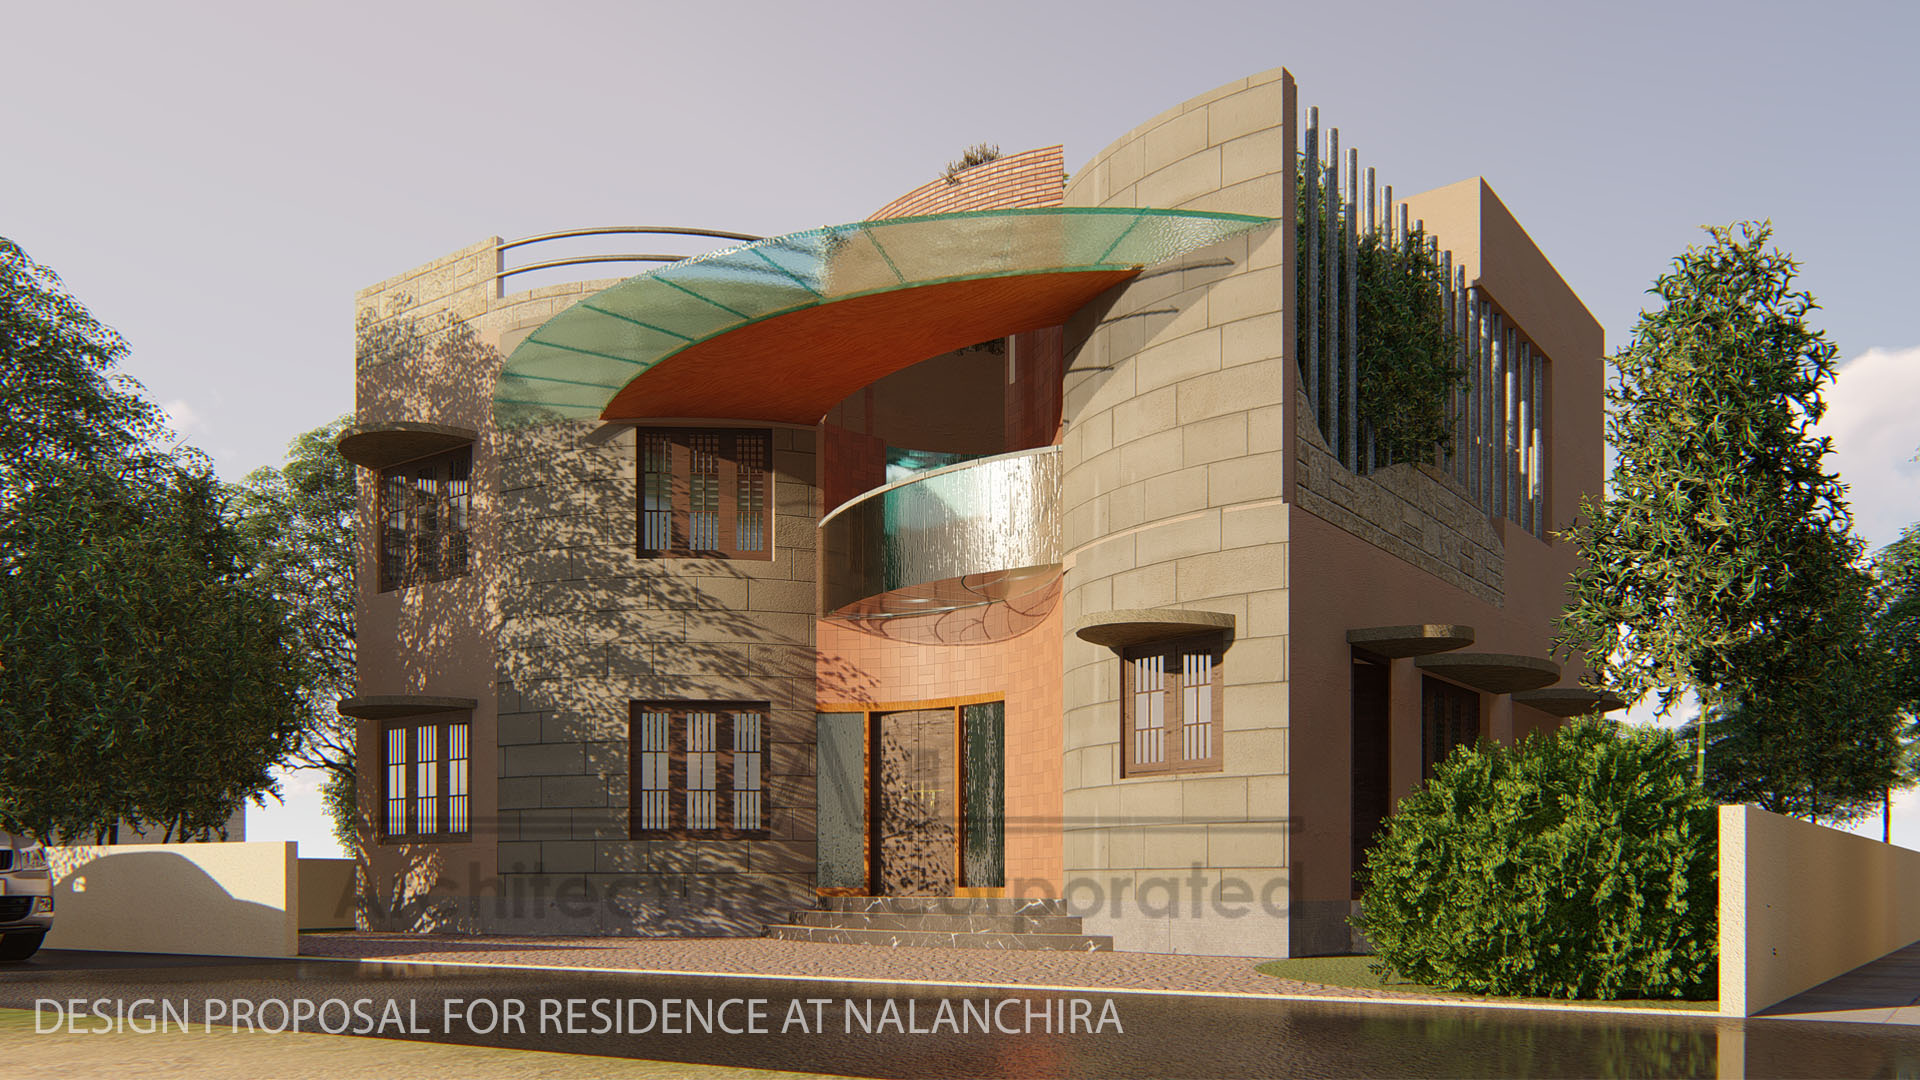 Residence, Nalanchira by Architecture Incorporated